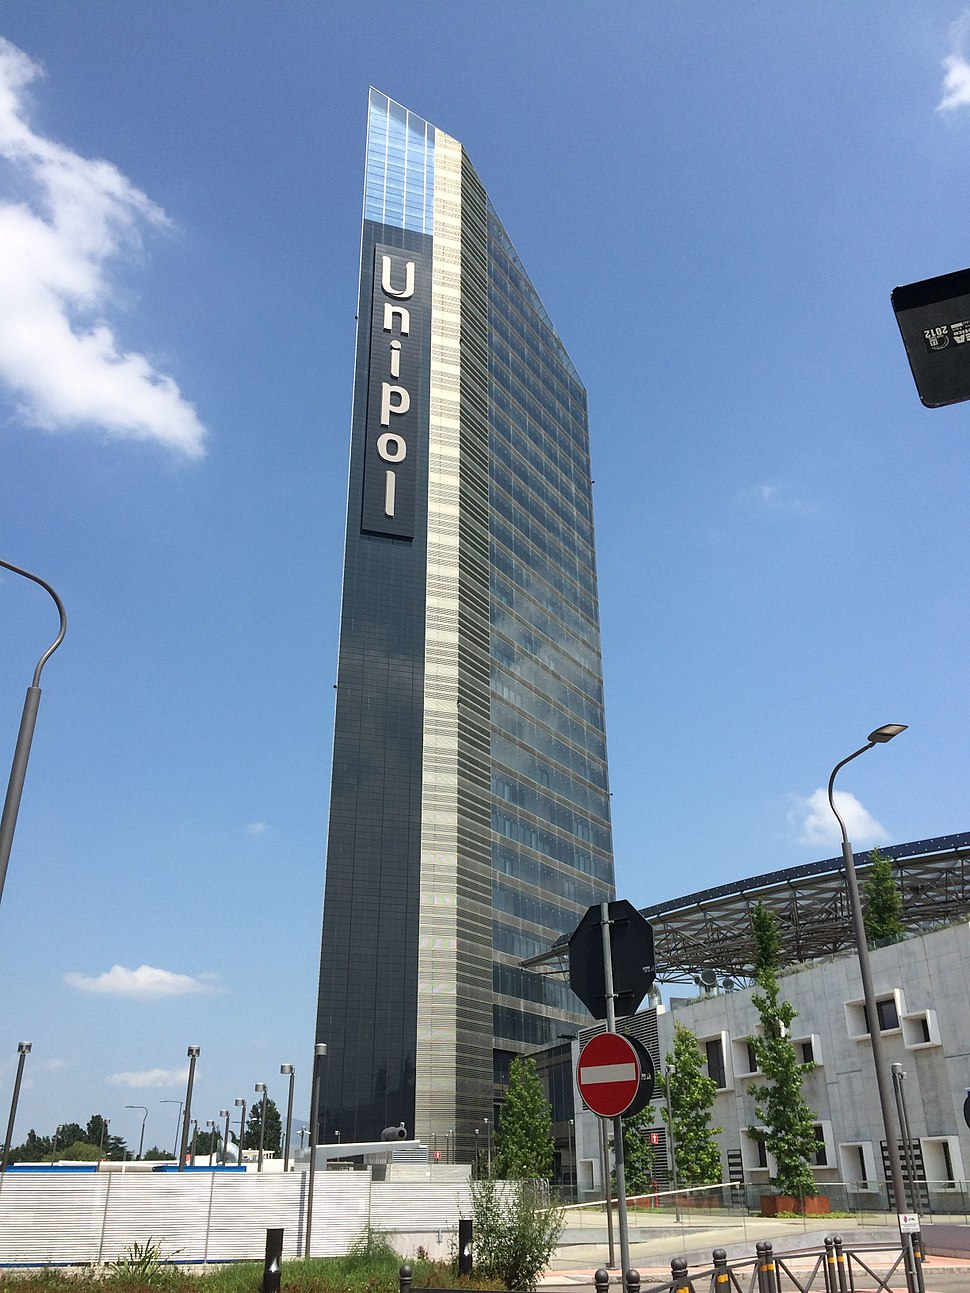 Unipol Tower 02